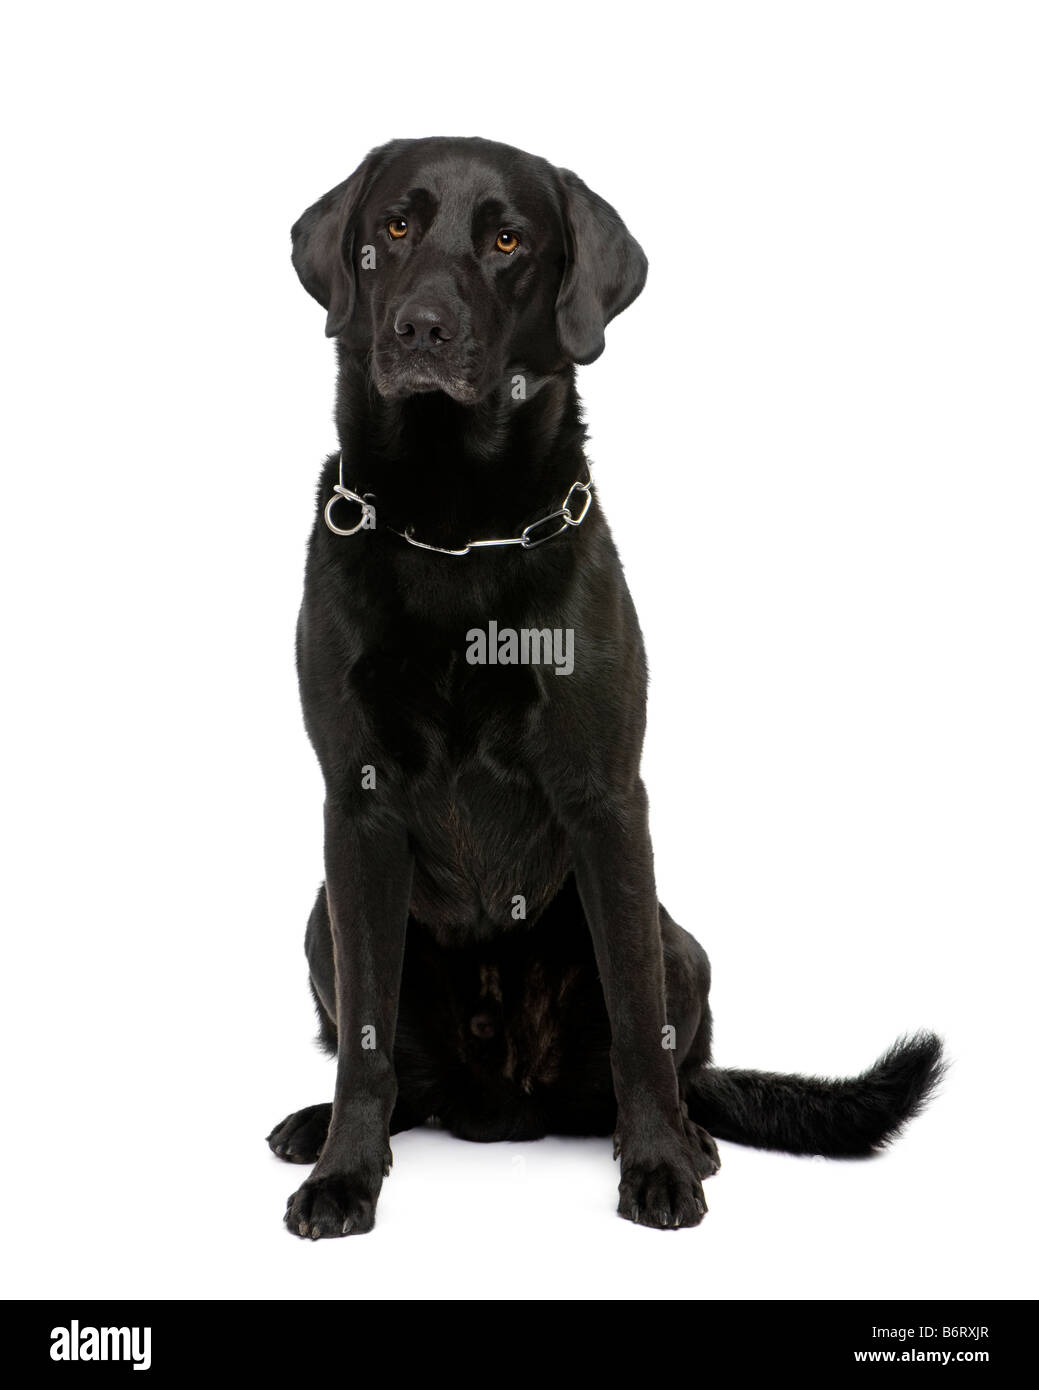 black Labrador in front of a white background - Stock Image